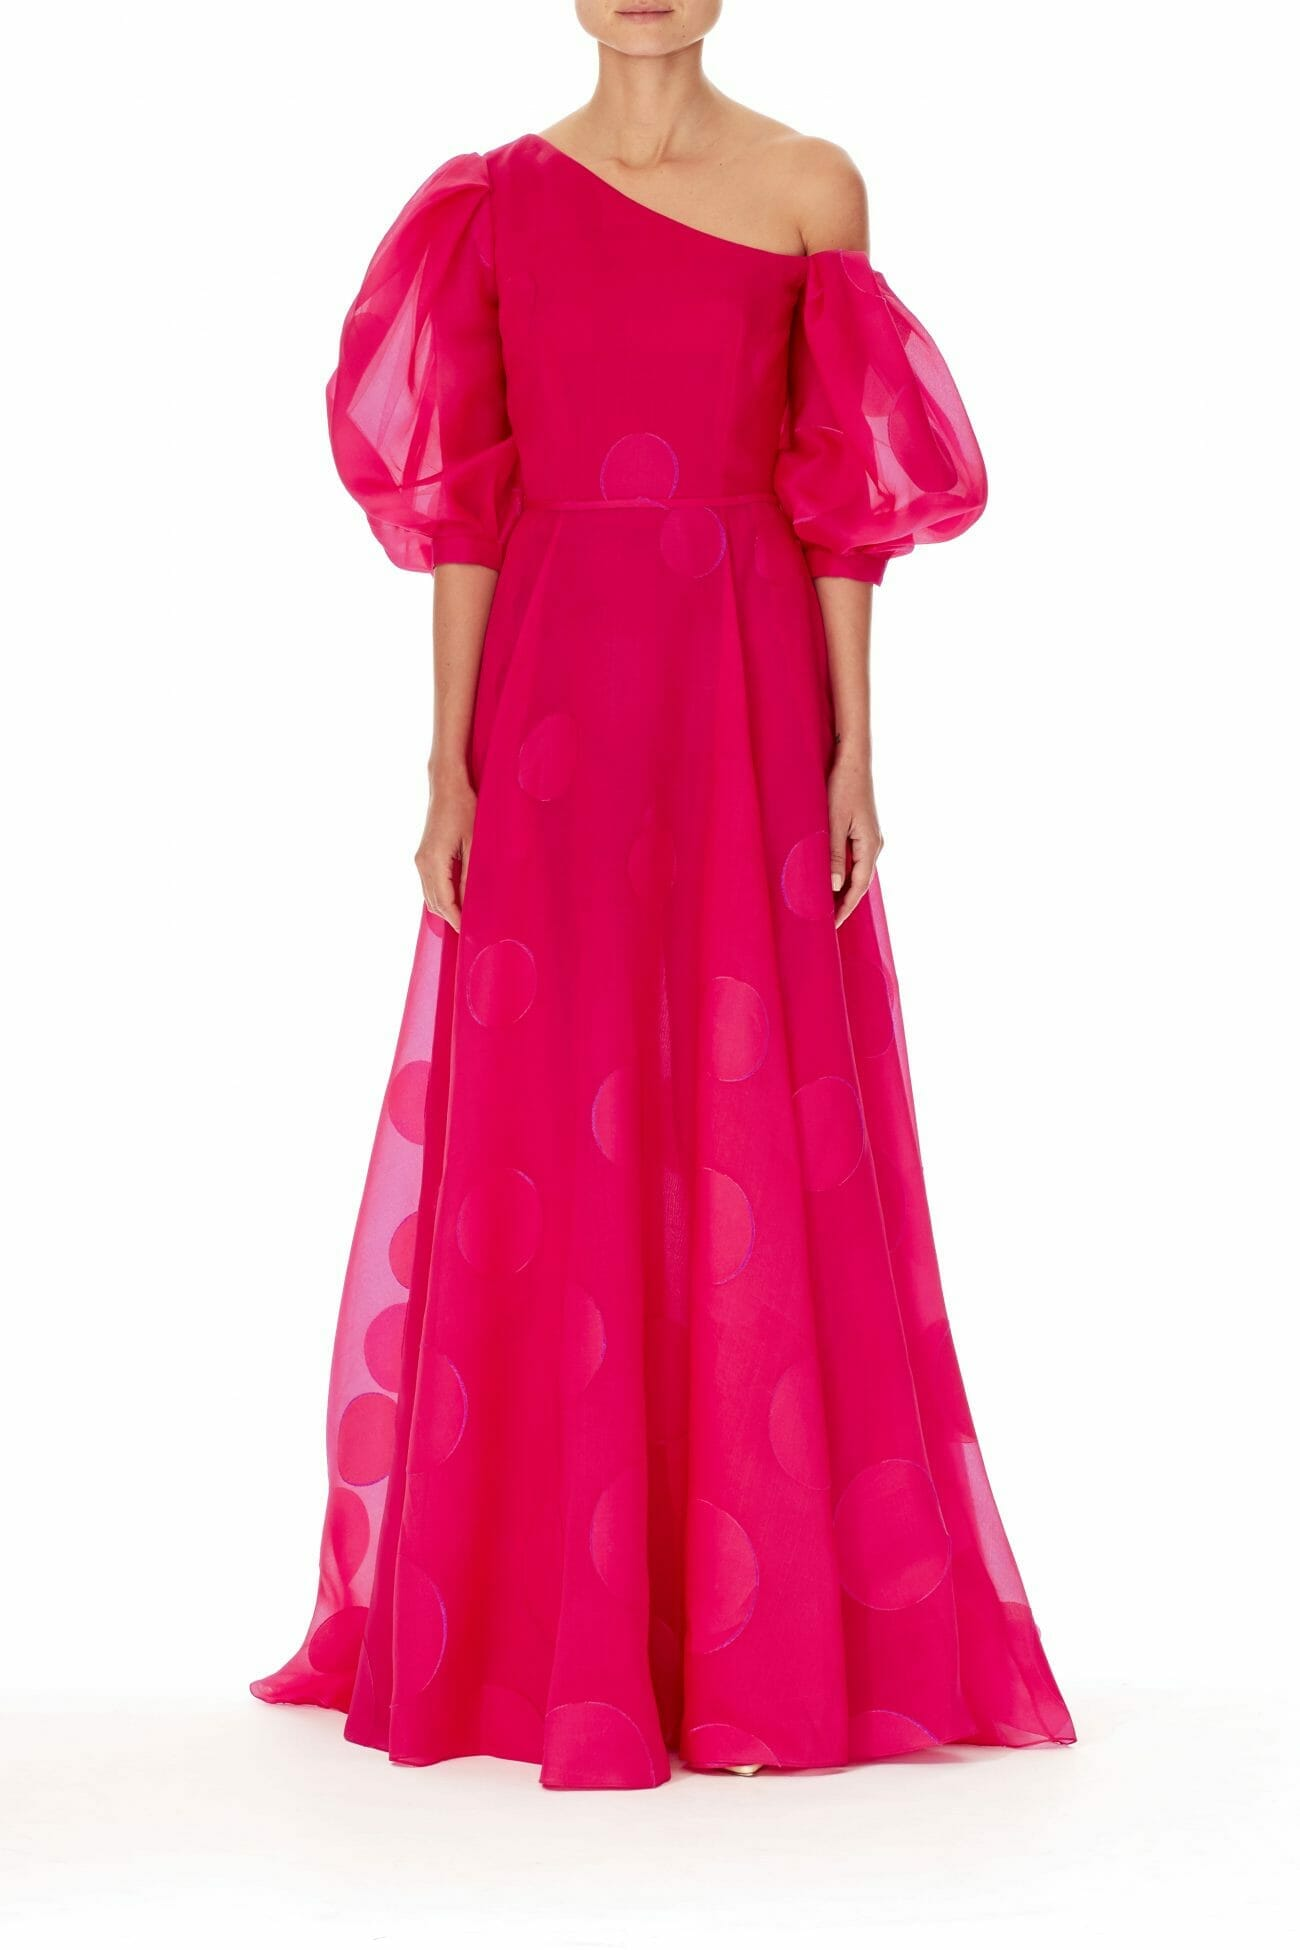 Carolina-Herrera-New-York-Resort-2019-look-113